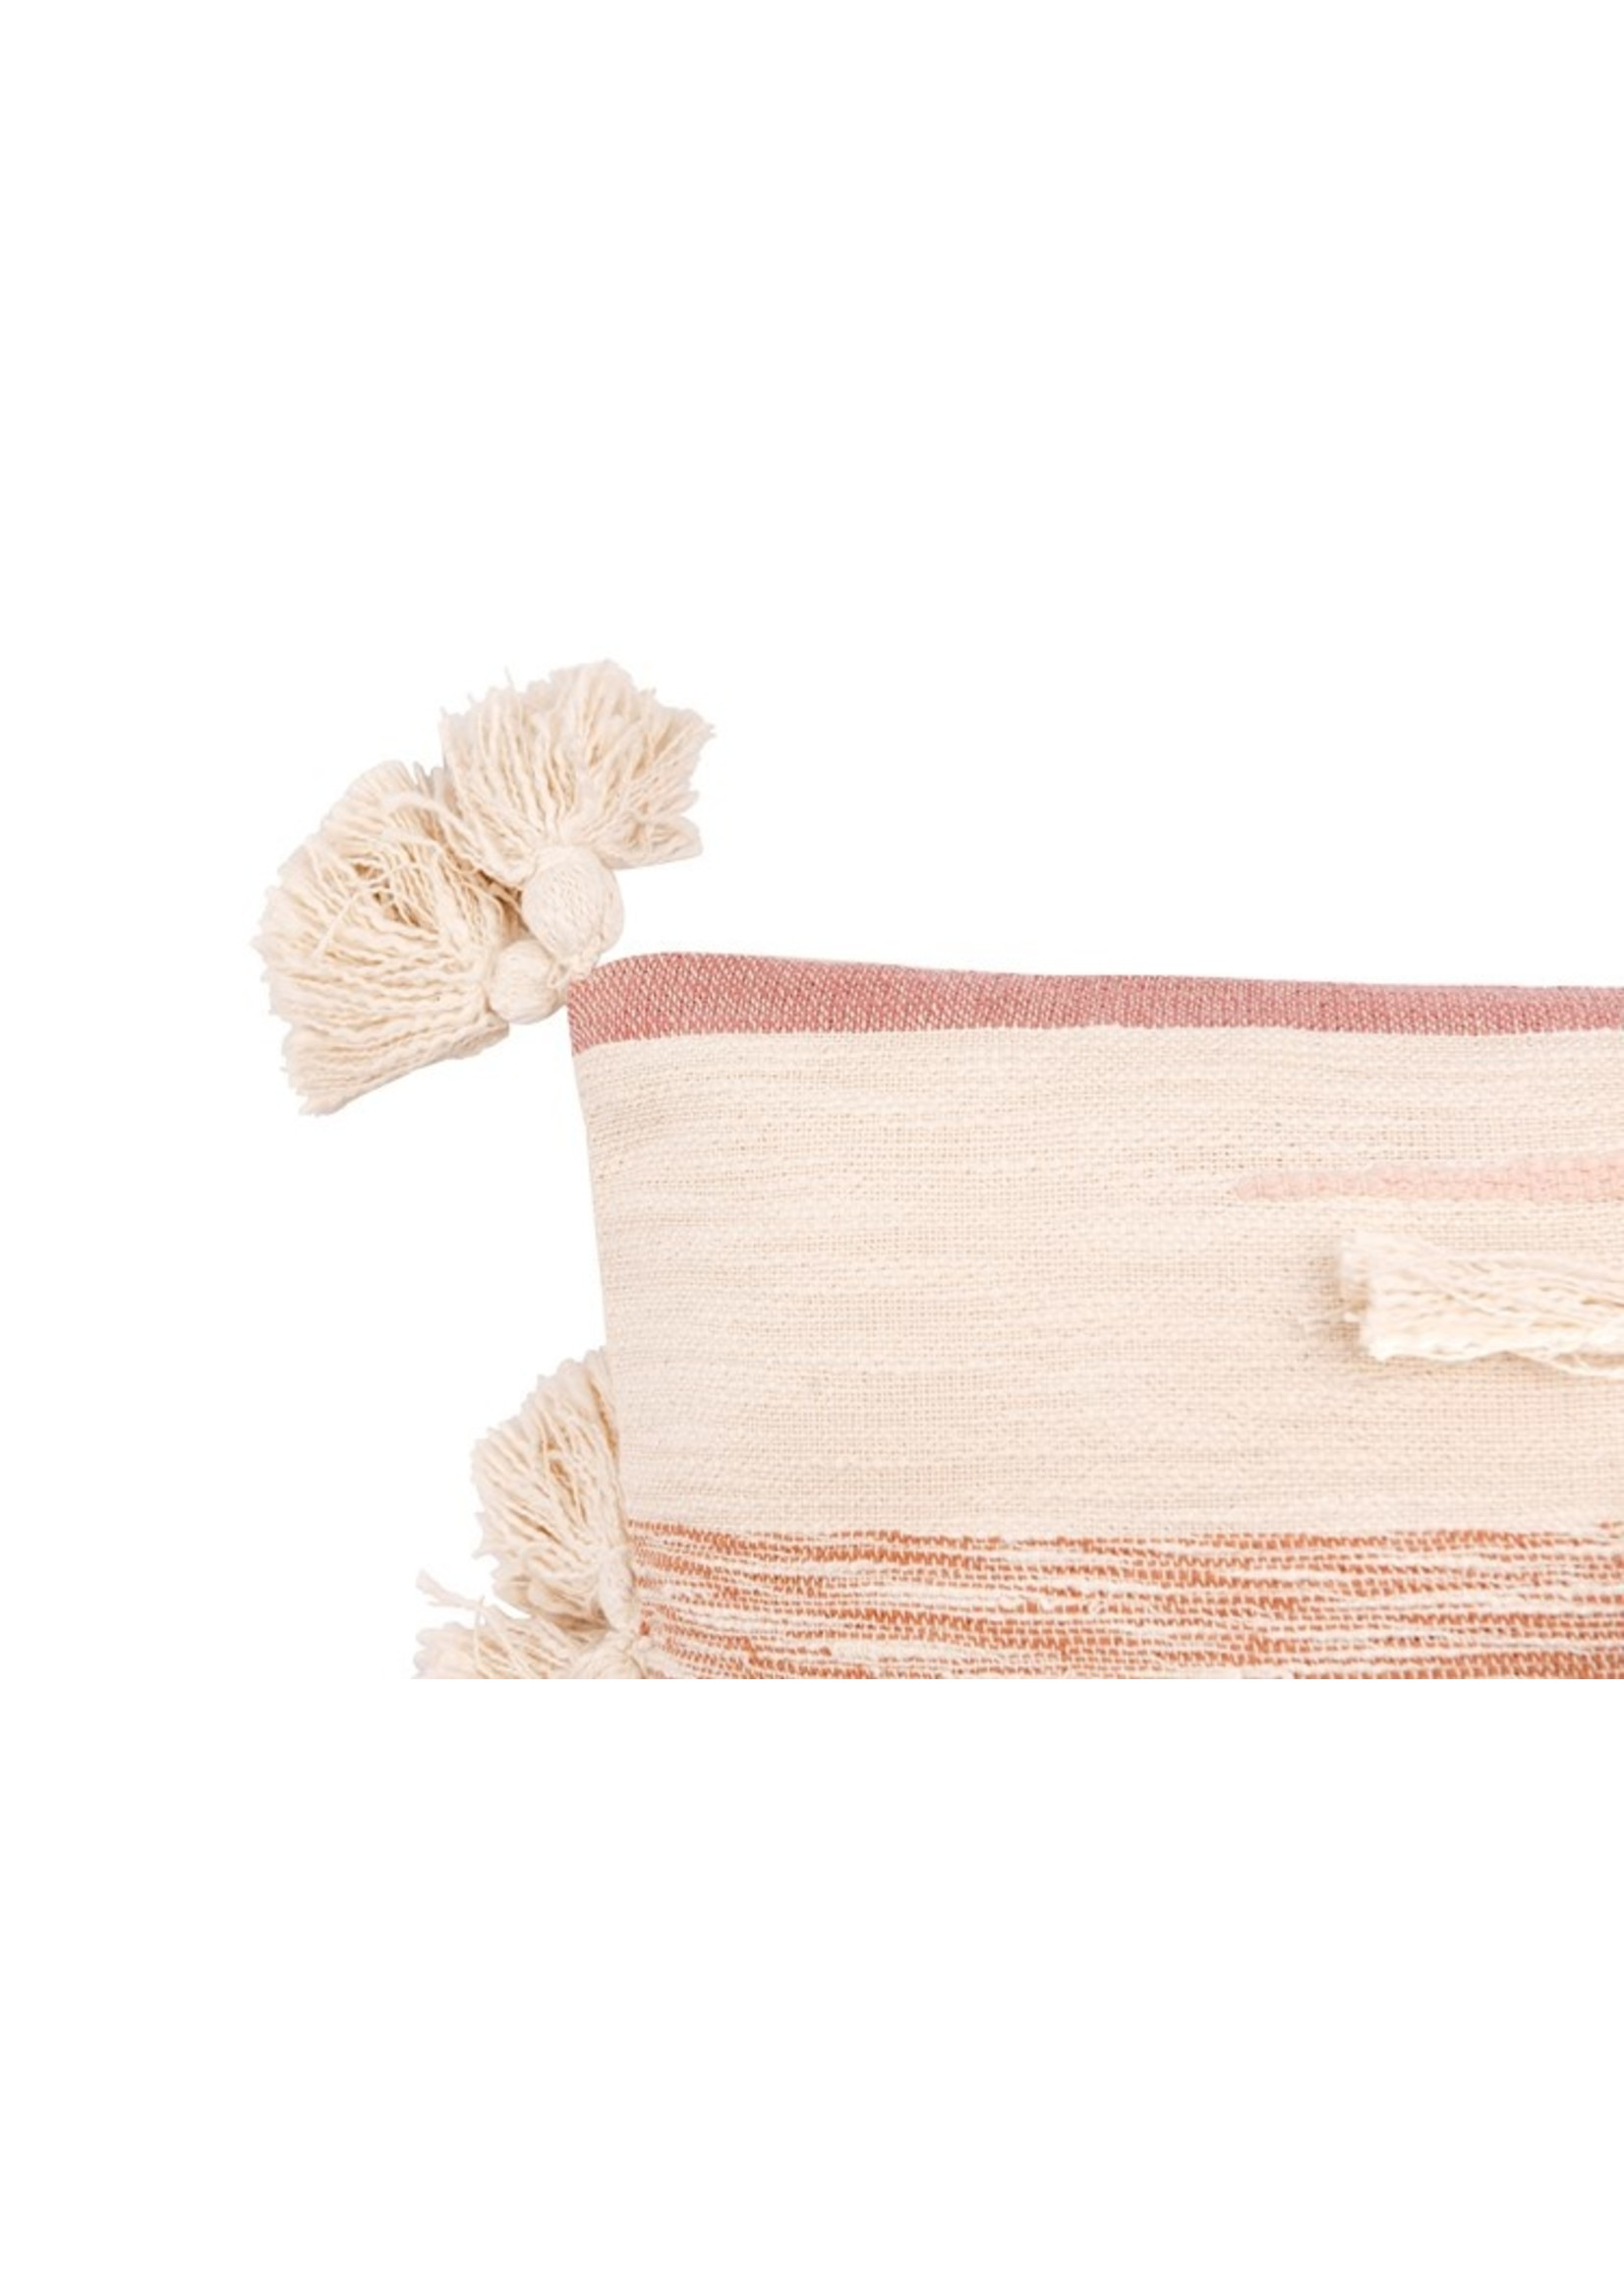 Creative Co-op Pink Tassel & Fringe Kilim Pillow